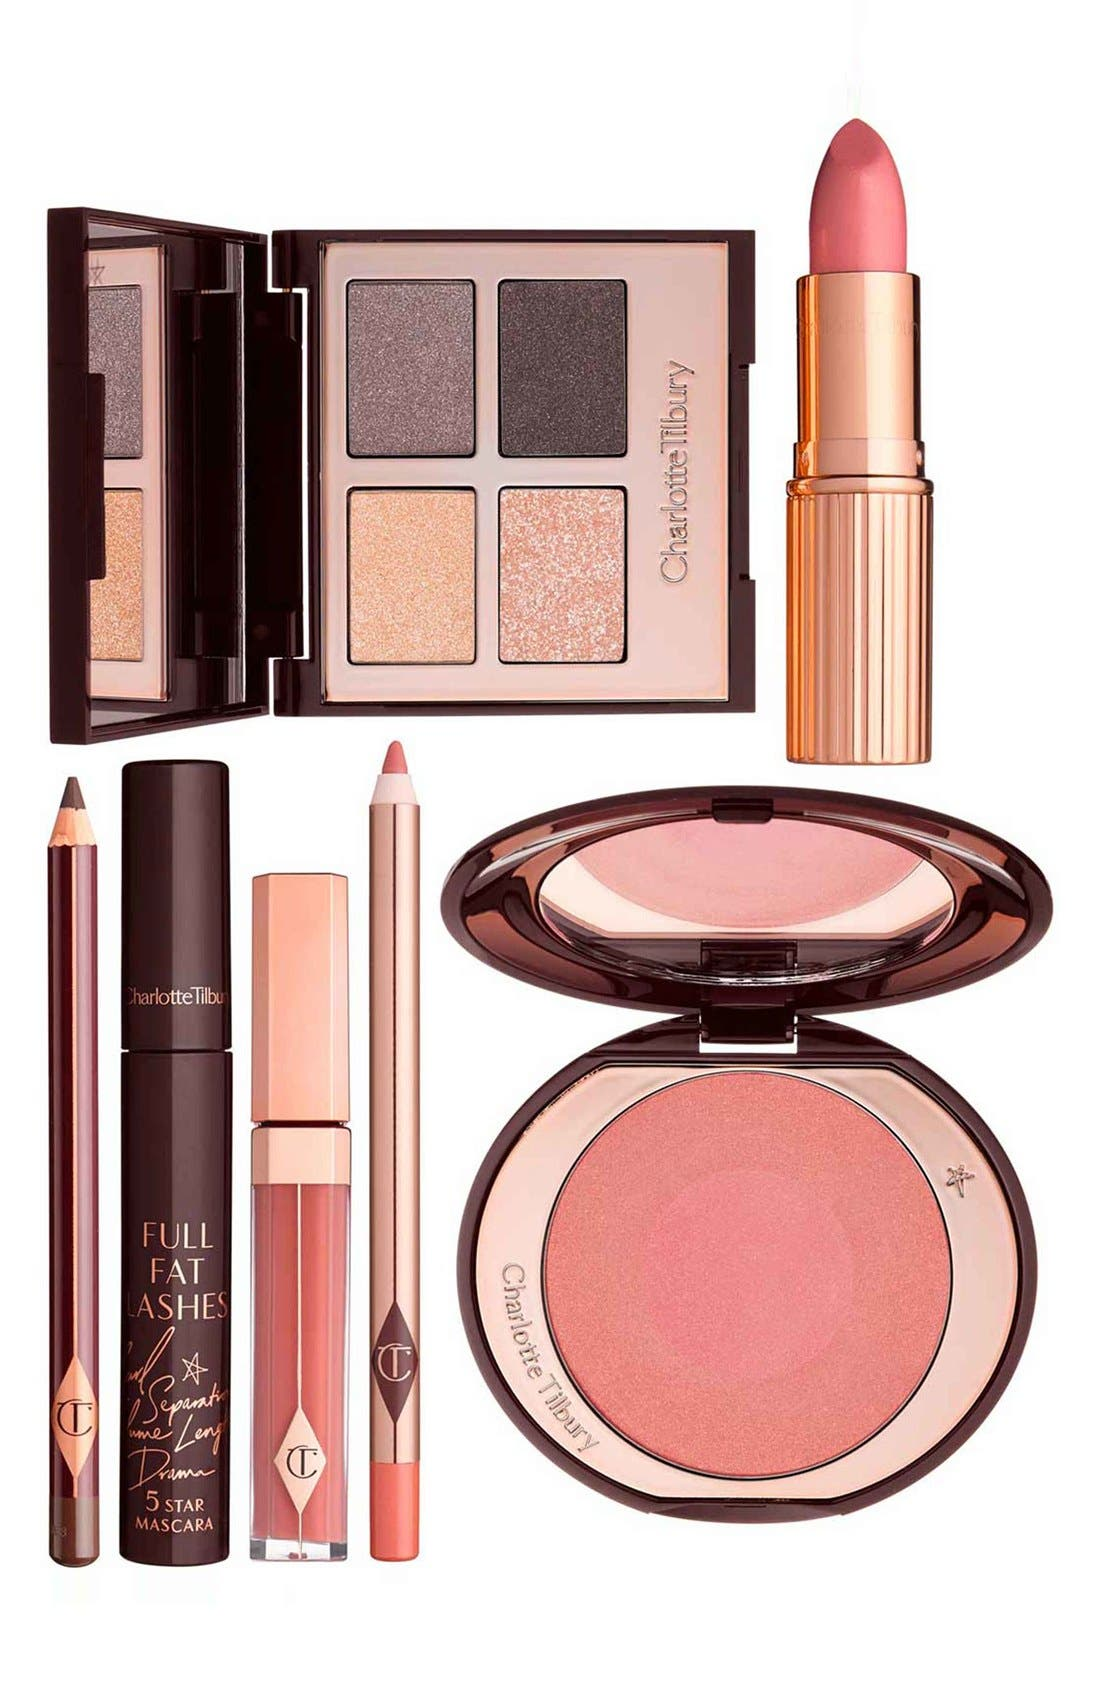 Charlotte Tilbury 'The Uptown Girl' Set ($239 Value)